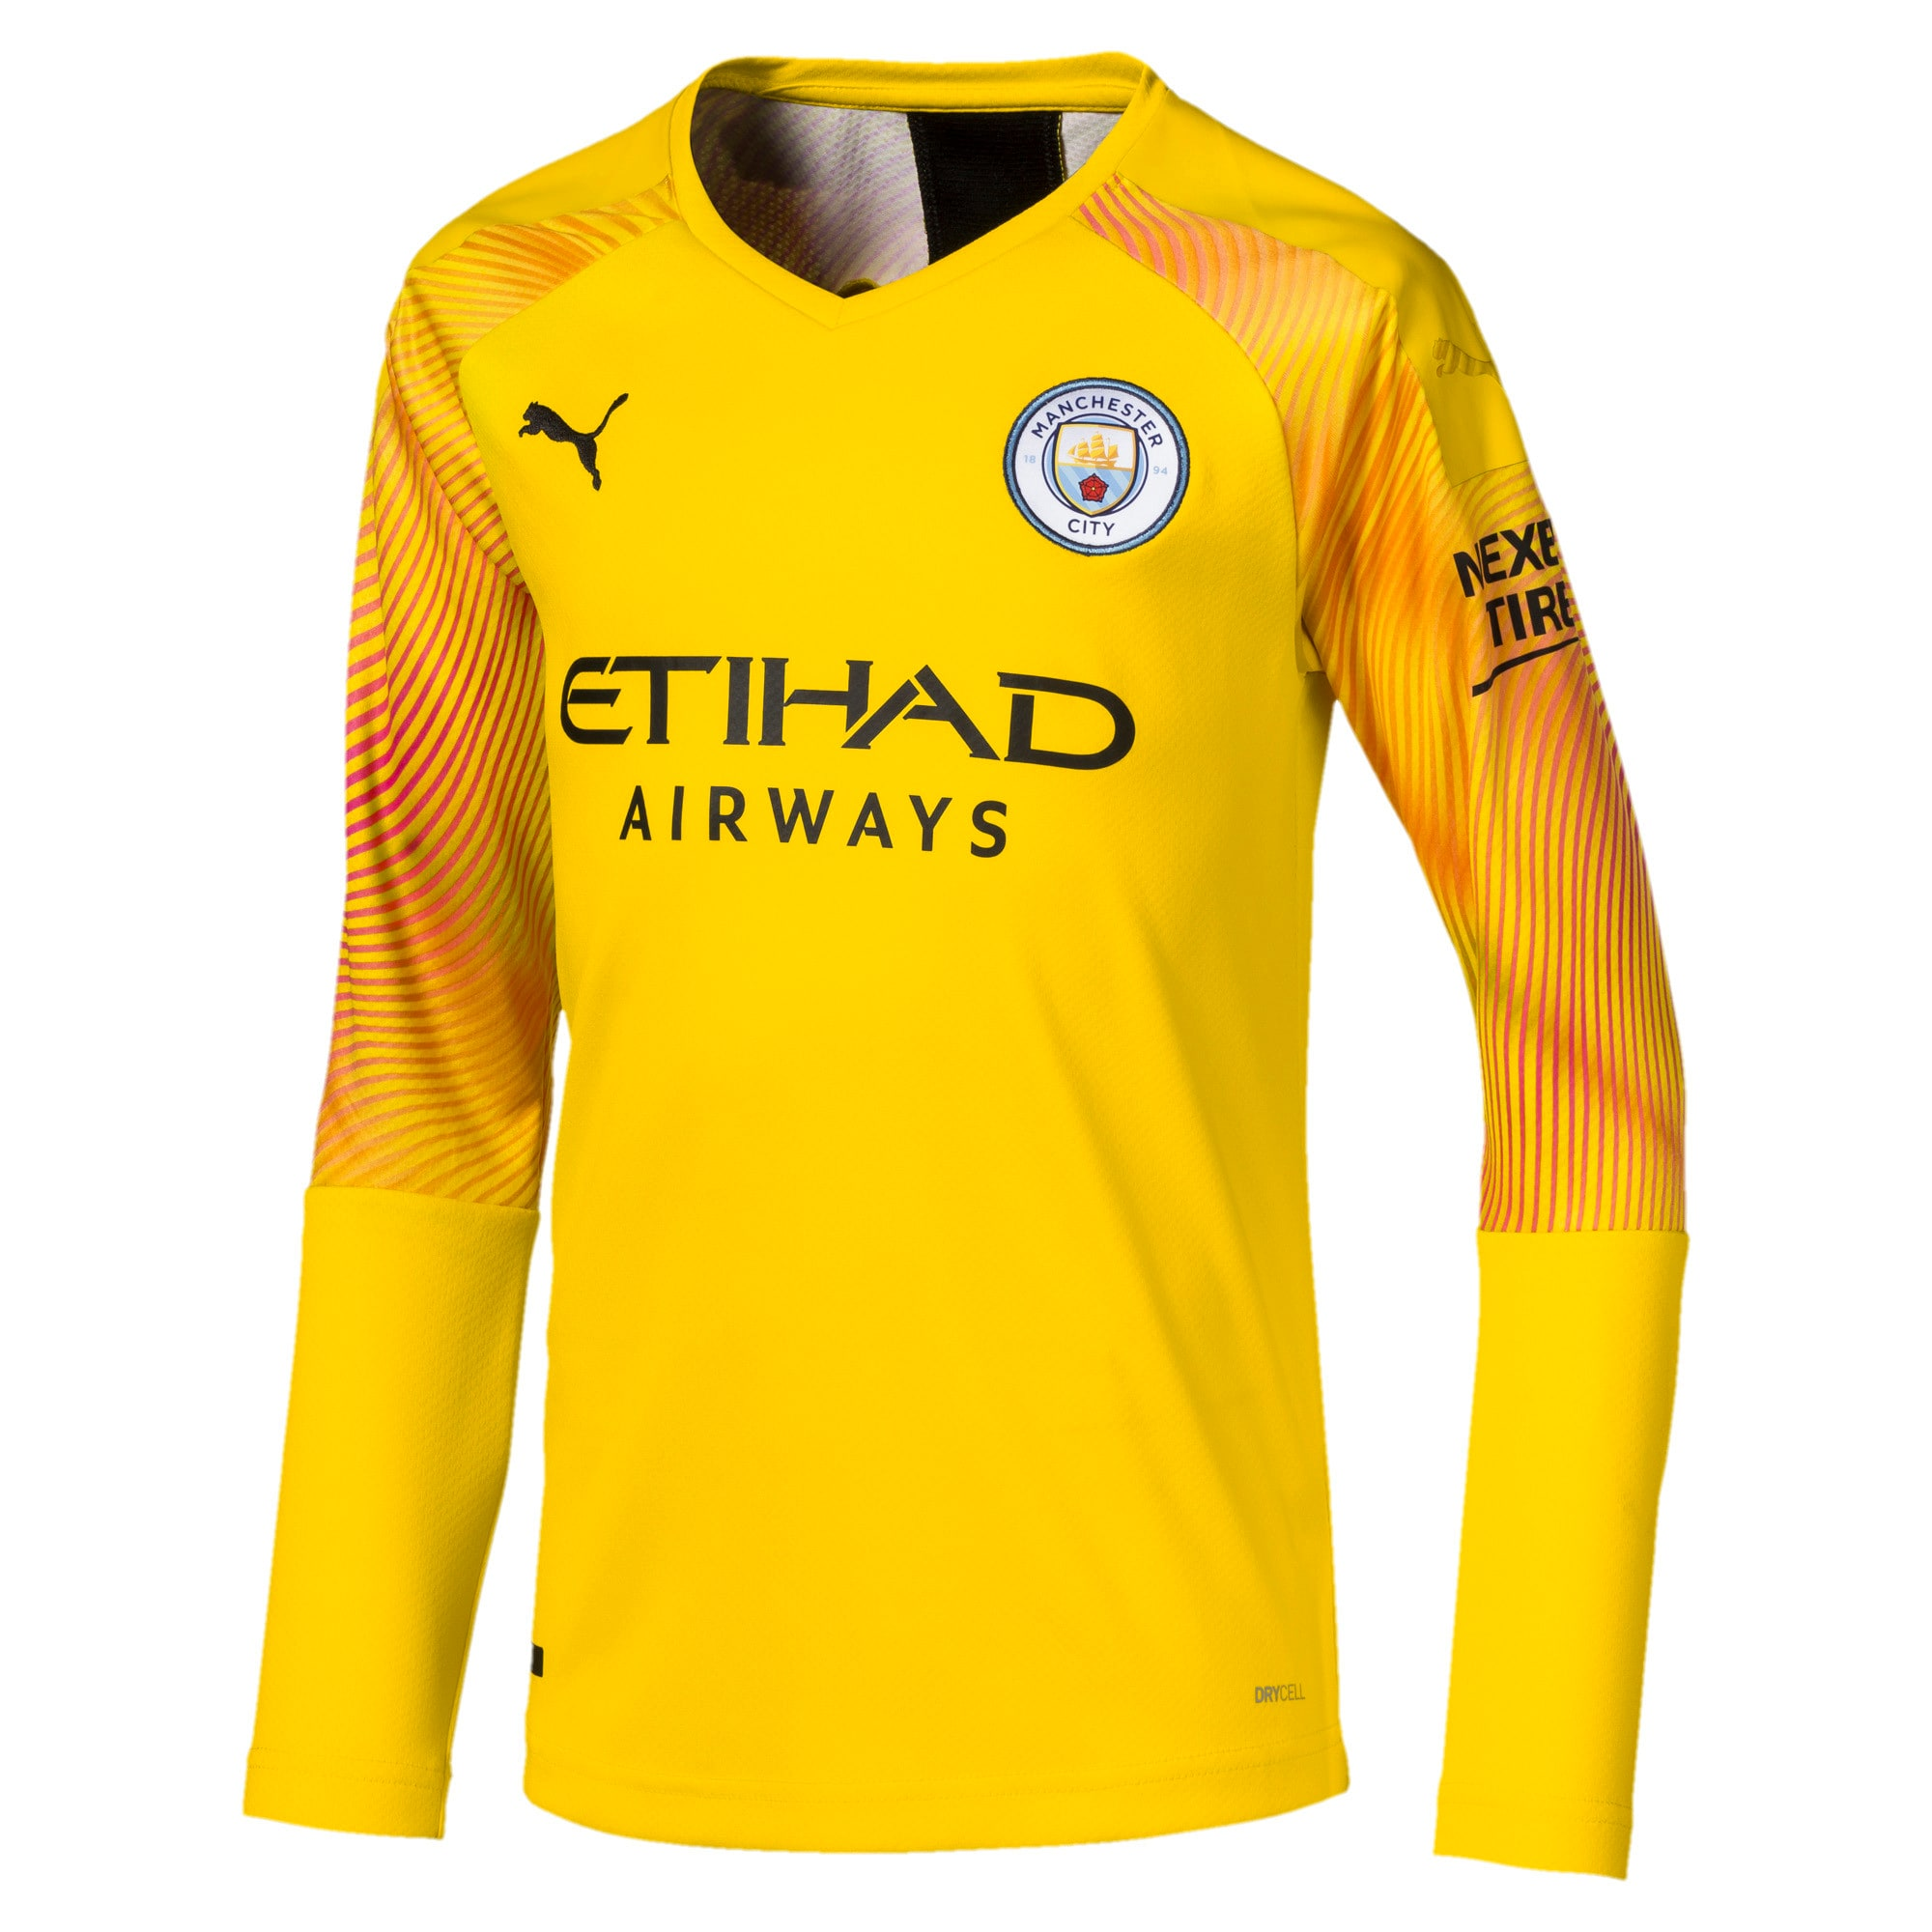 Thumbnail 1 of Man City Long Sleeve Kids' Replica Goalkeeper Jersey, Cyber Yellow-Puma Black, medium